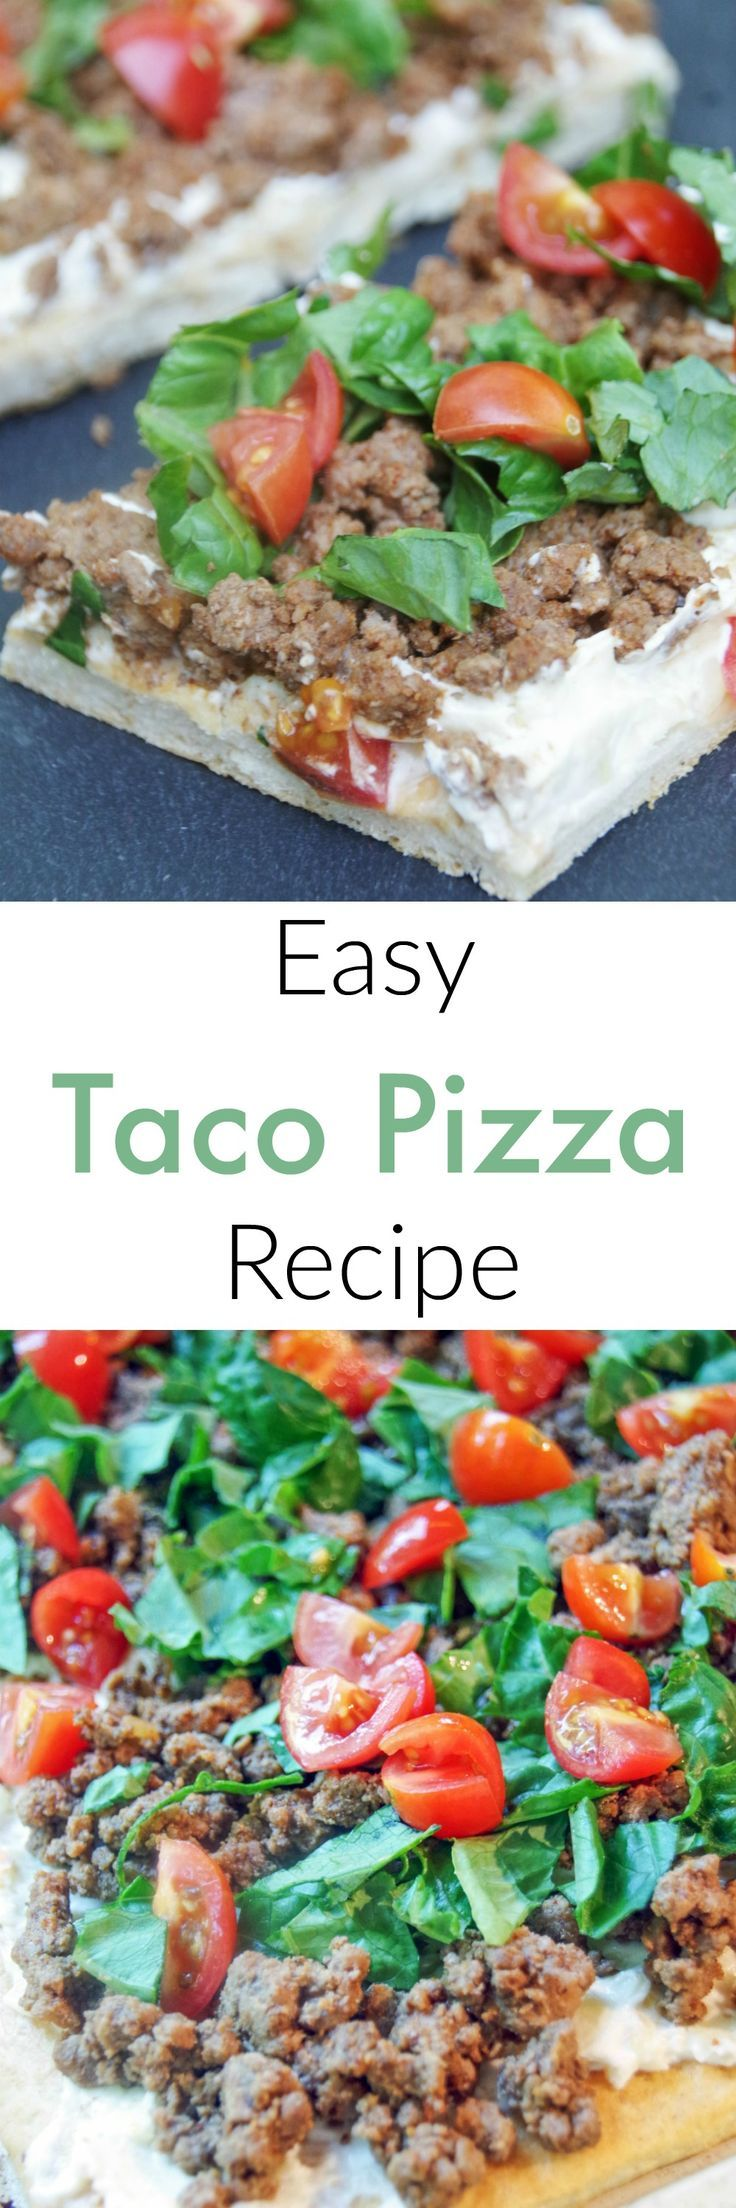 Easy Taco Pizza Recipe is a Simple Dinner Idea that Everyone will Love!